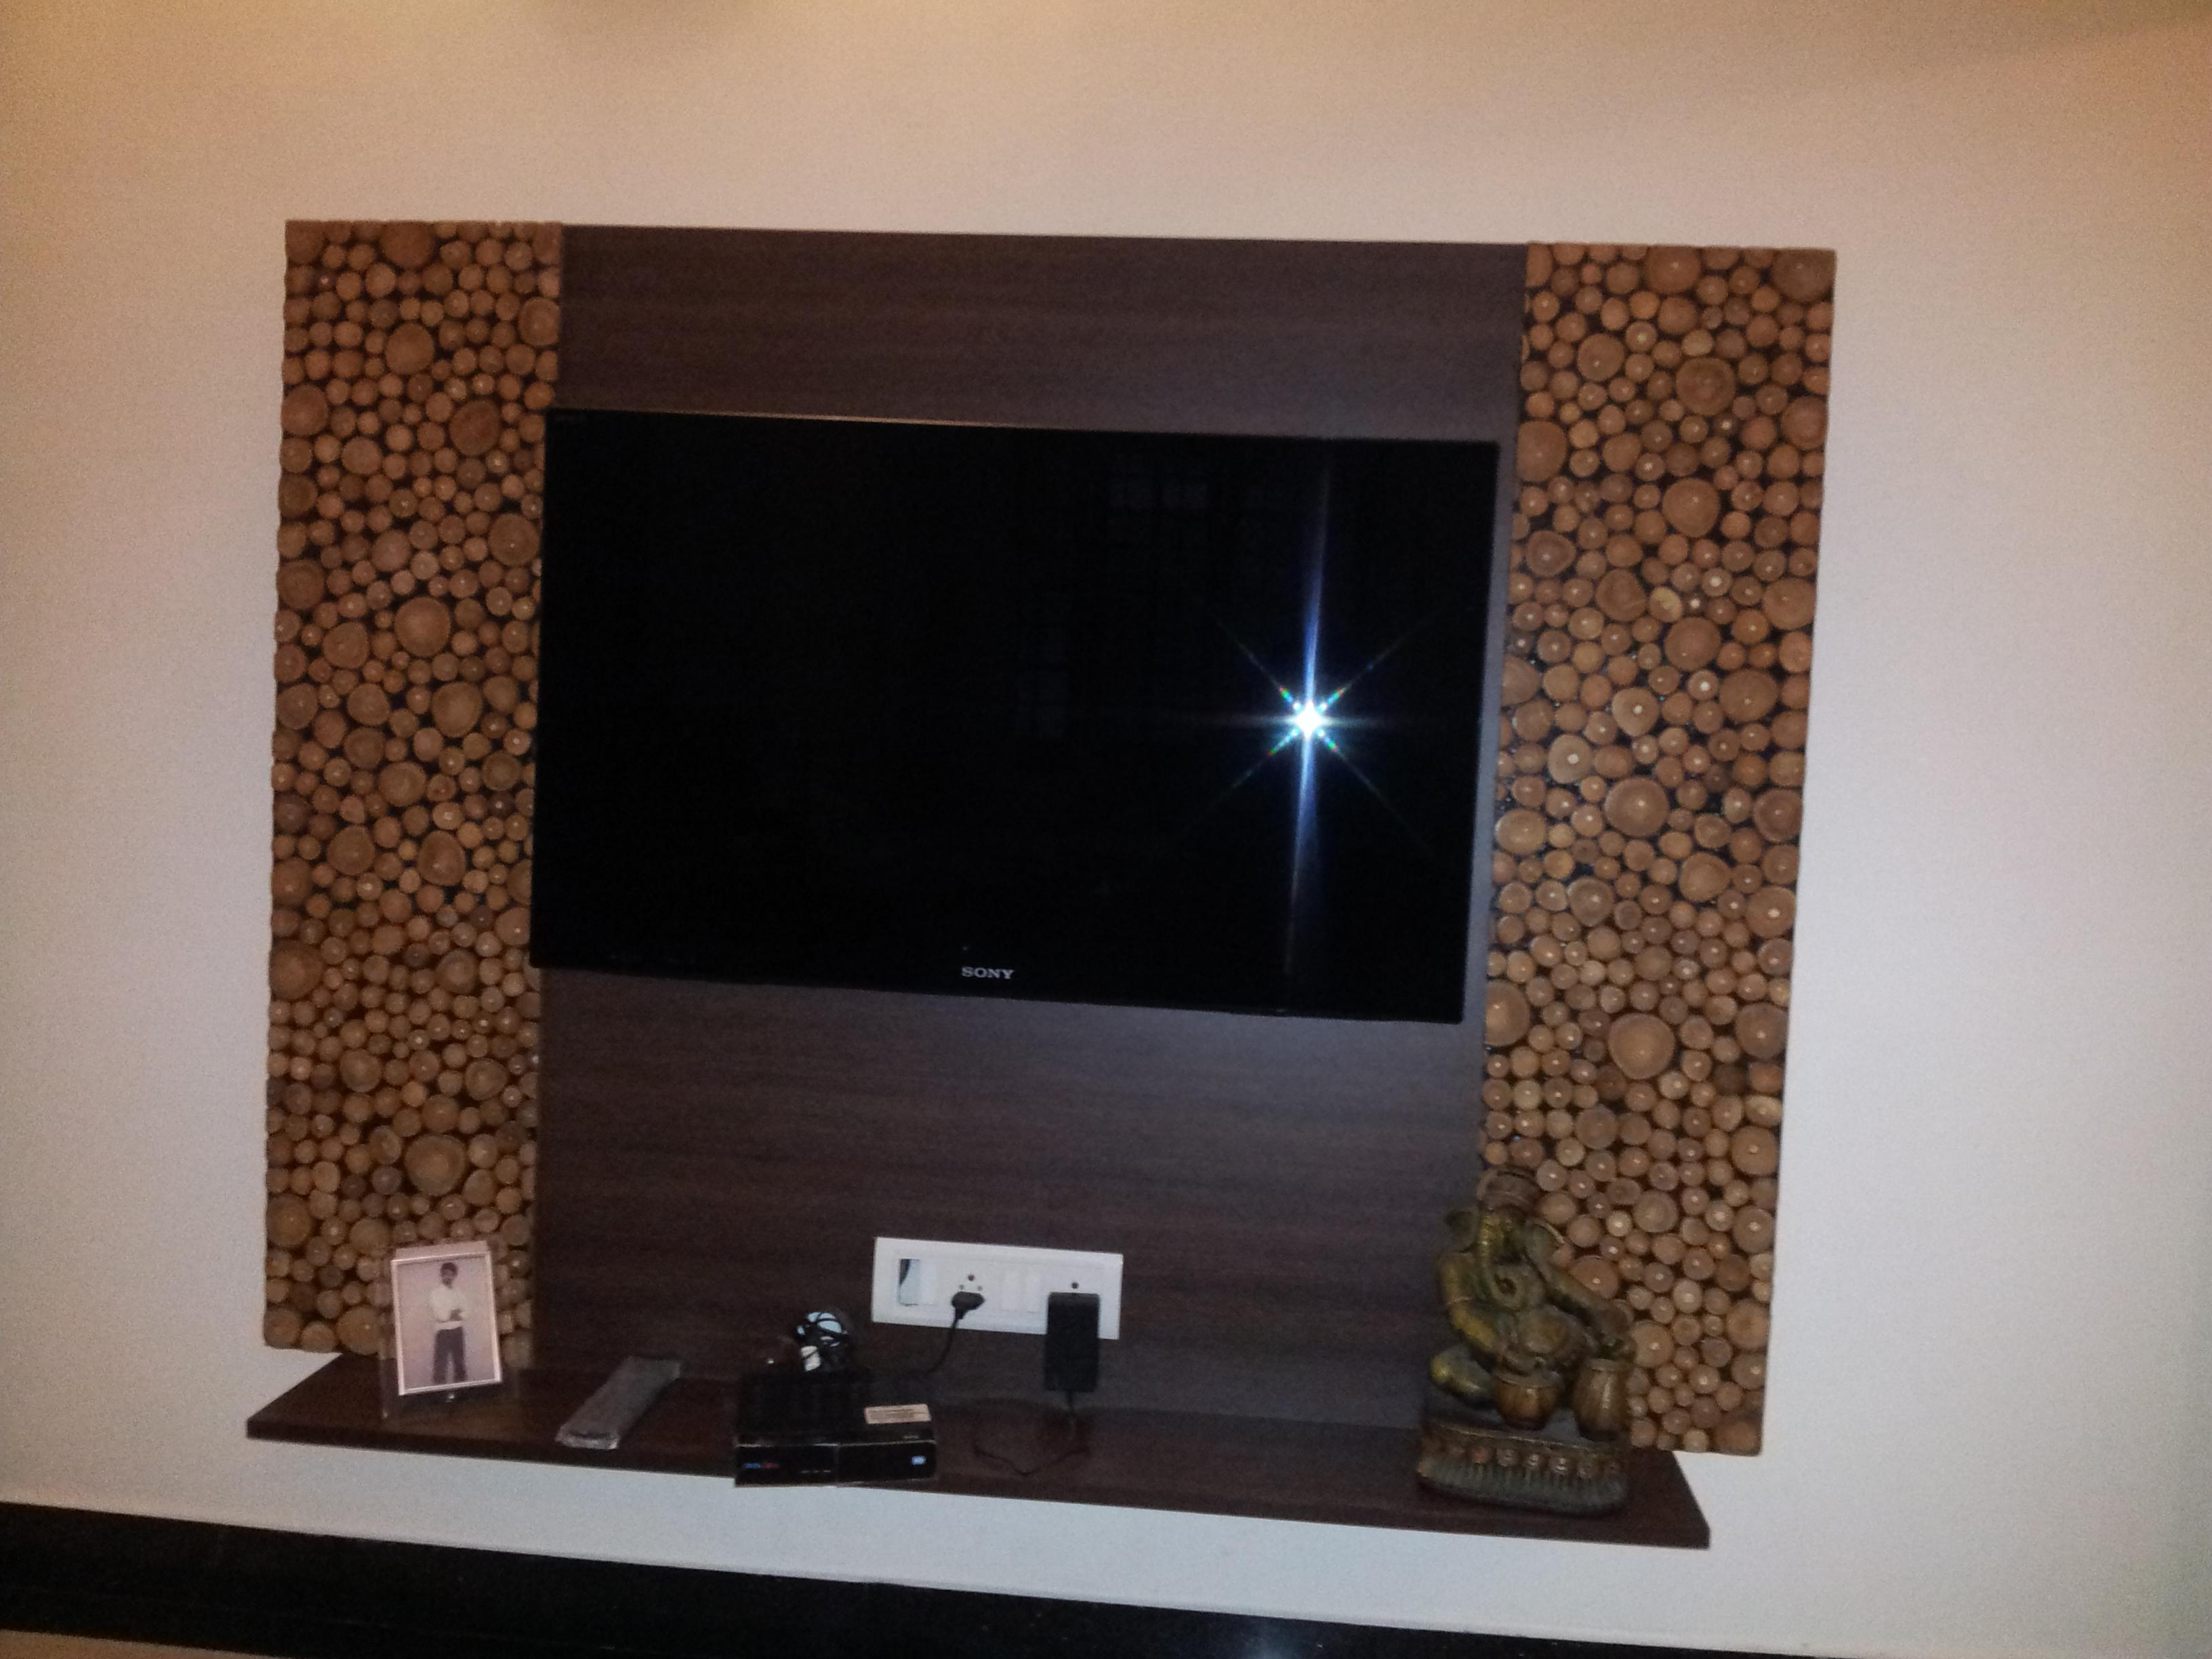 Wall Mounted Tv Unit Designs For Bedroom : Led tv wall mount cabinet designs for bedroom memsaheb